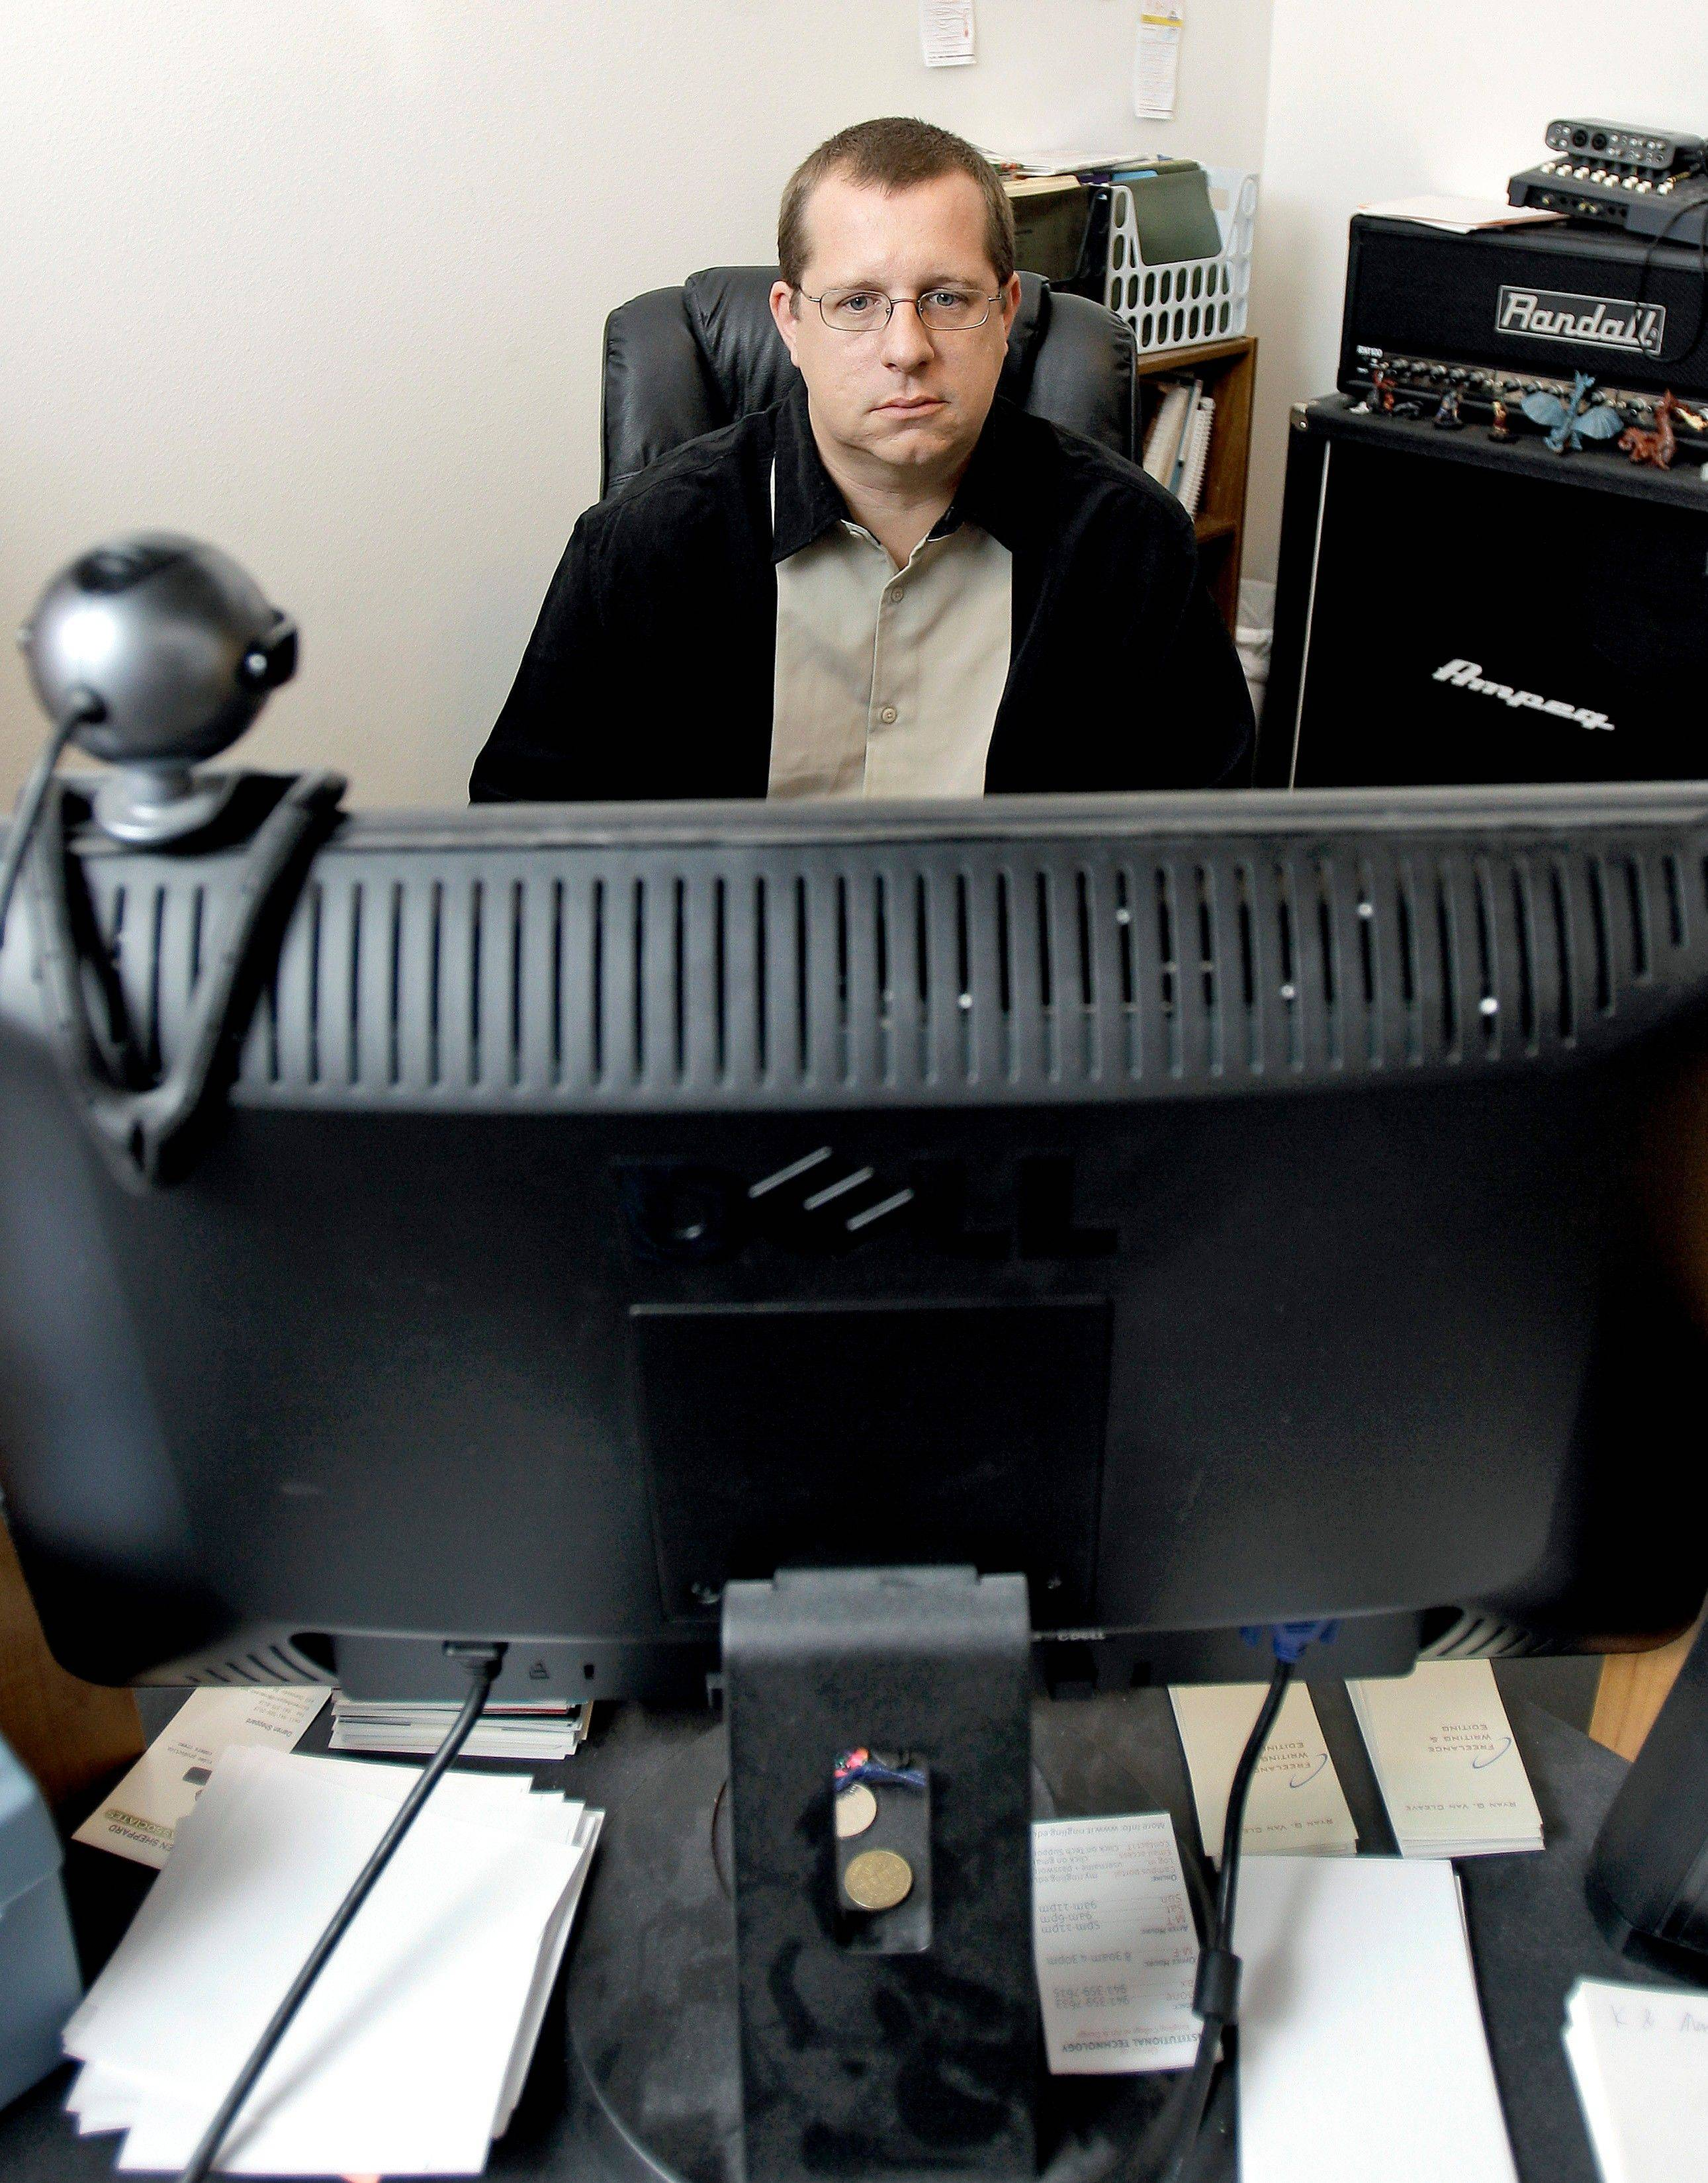 Ryan Van Cleave sits behind a computer at his home in Sarasota, Fla. Gaming and thinking about video games was all-consuming for Van Cleave. Yet living inside the game World of Warcraft, which became his obsession, seemed preferable to the drudgery of everyday life.